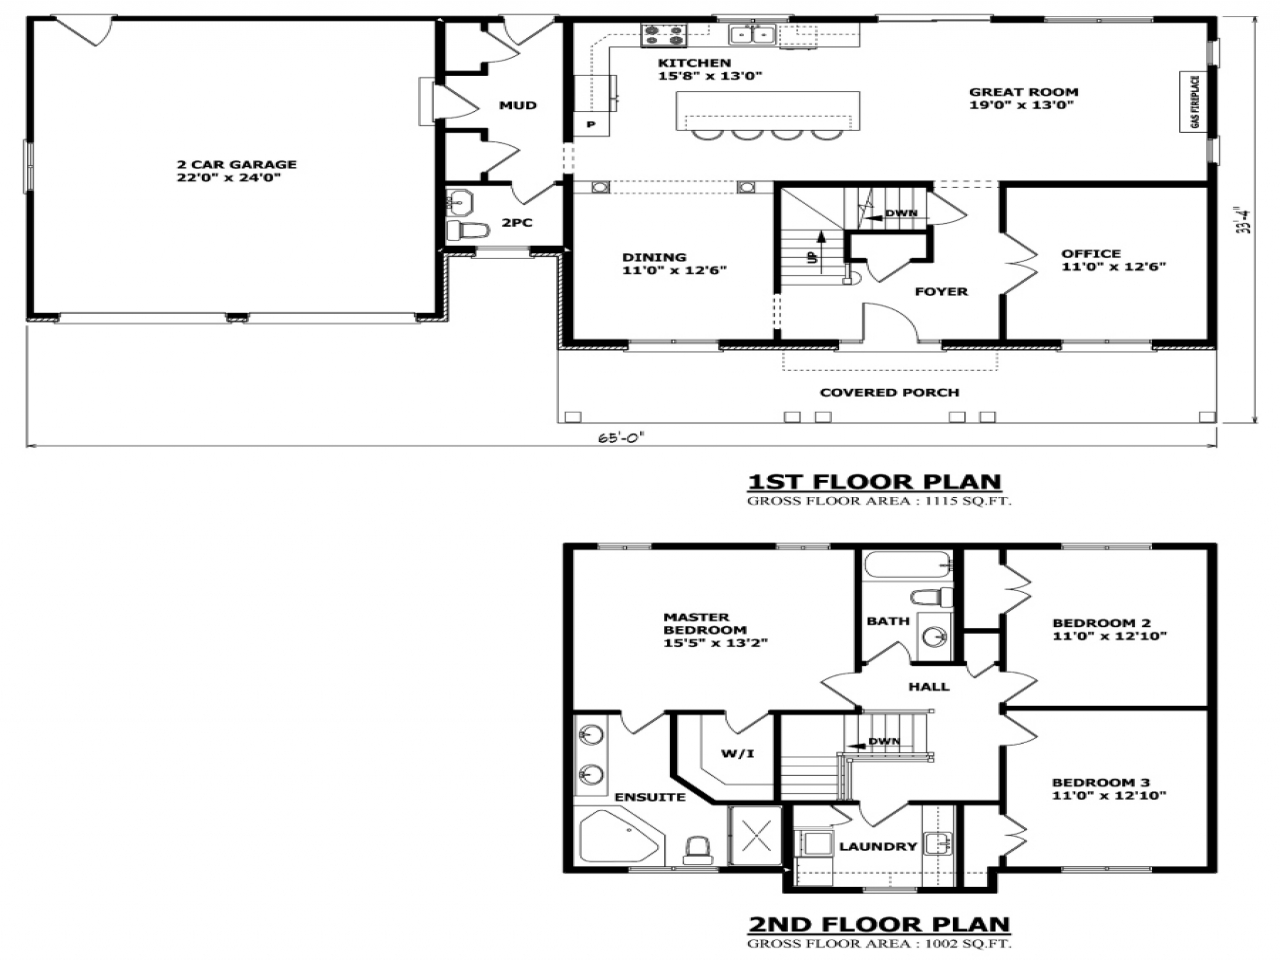 simple two story house plans simple two story house plans two storey house plans canadian house plan treesranch com 2263